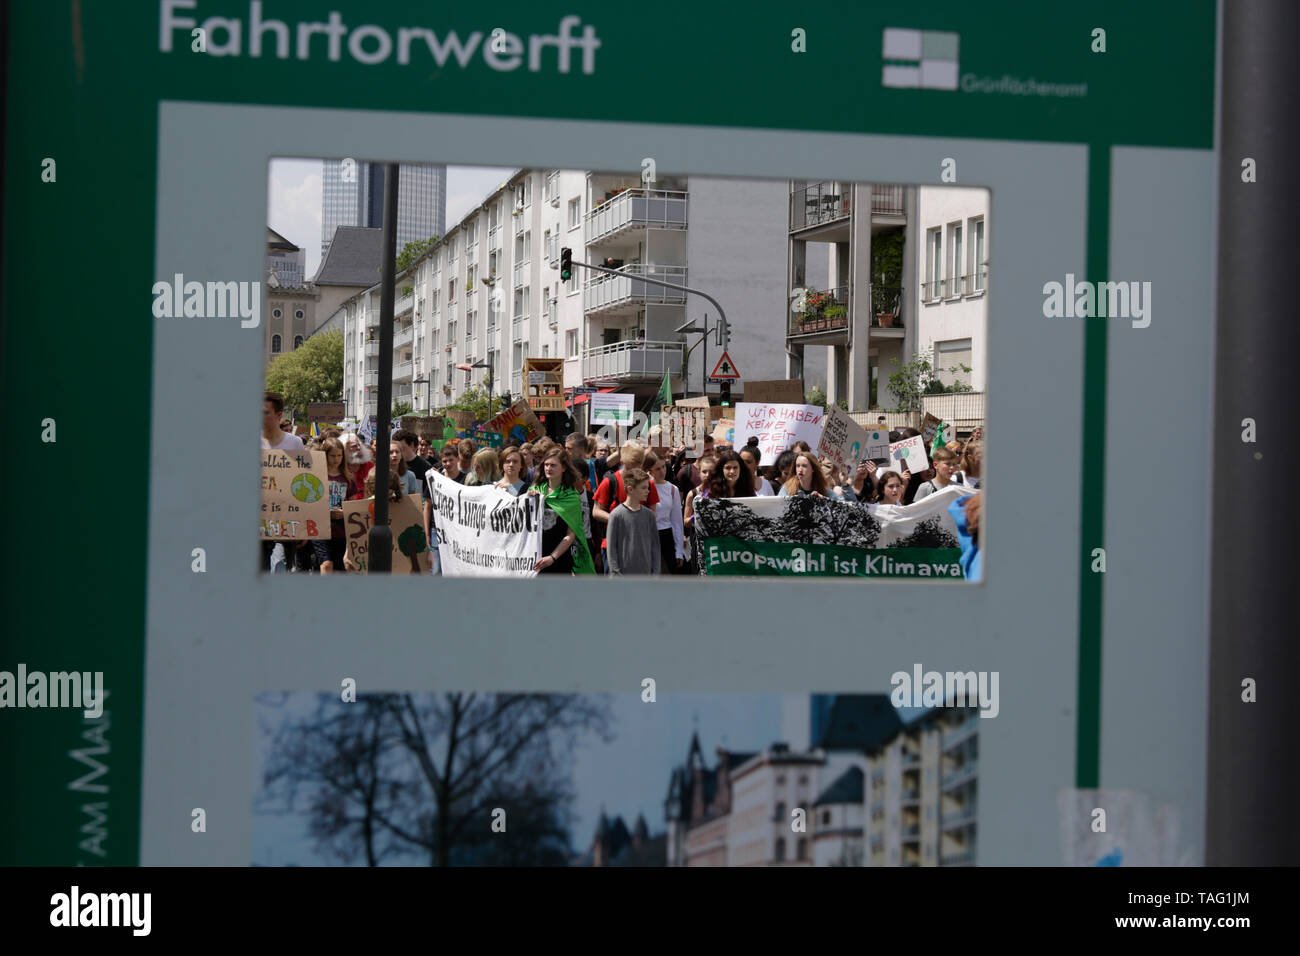 The protest march seen through a tourist sign. Around 4,500 young people marched through Frankfurt to the European Central Bank, to protest against the climate change and for the introduction of measurements against it. The protest took place as part of an Europe wide climate strike, two days ahead of the 2019 European elections. (Photo by Michael Debets/Pacific Press - Stock Image